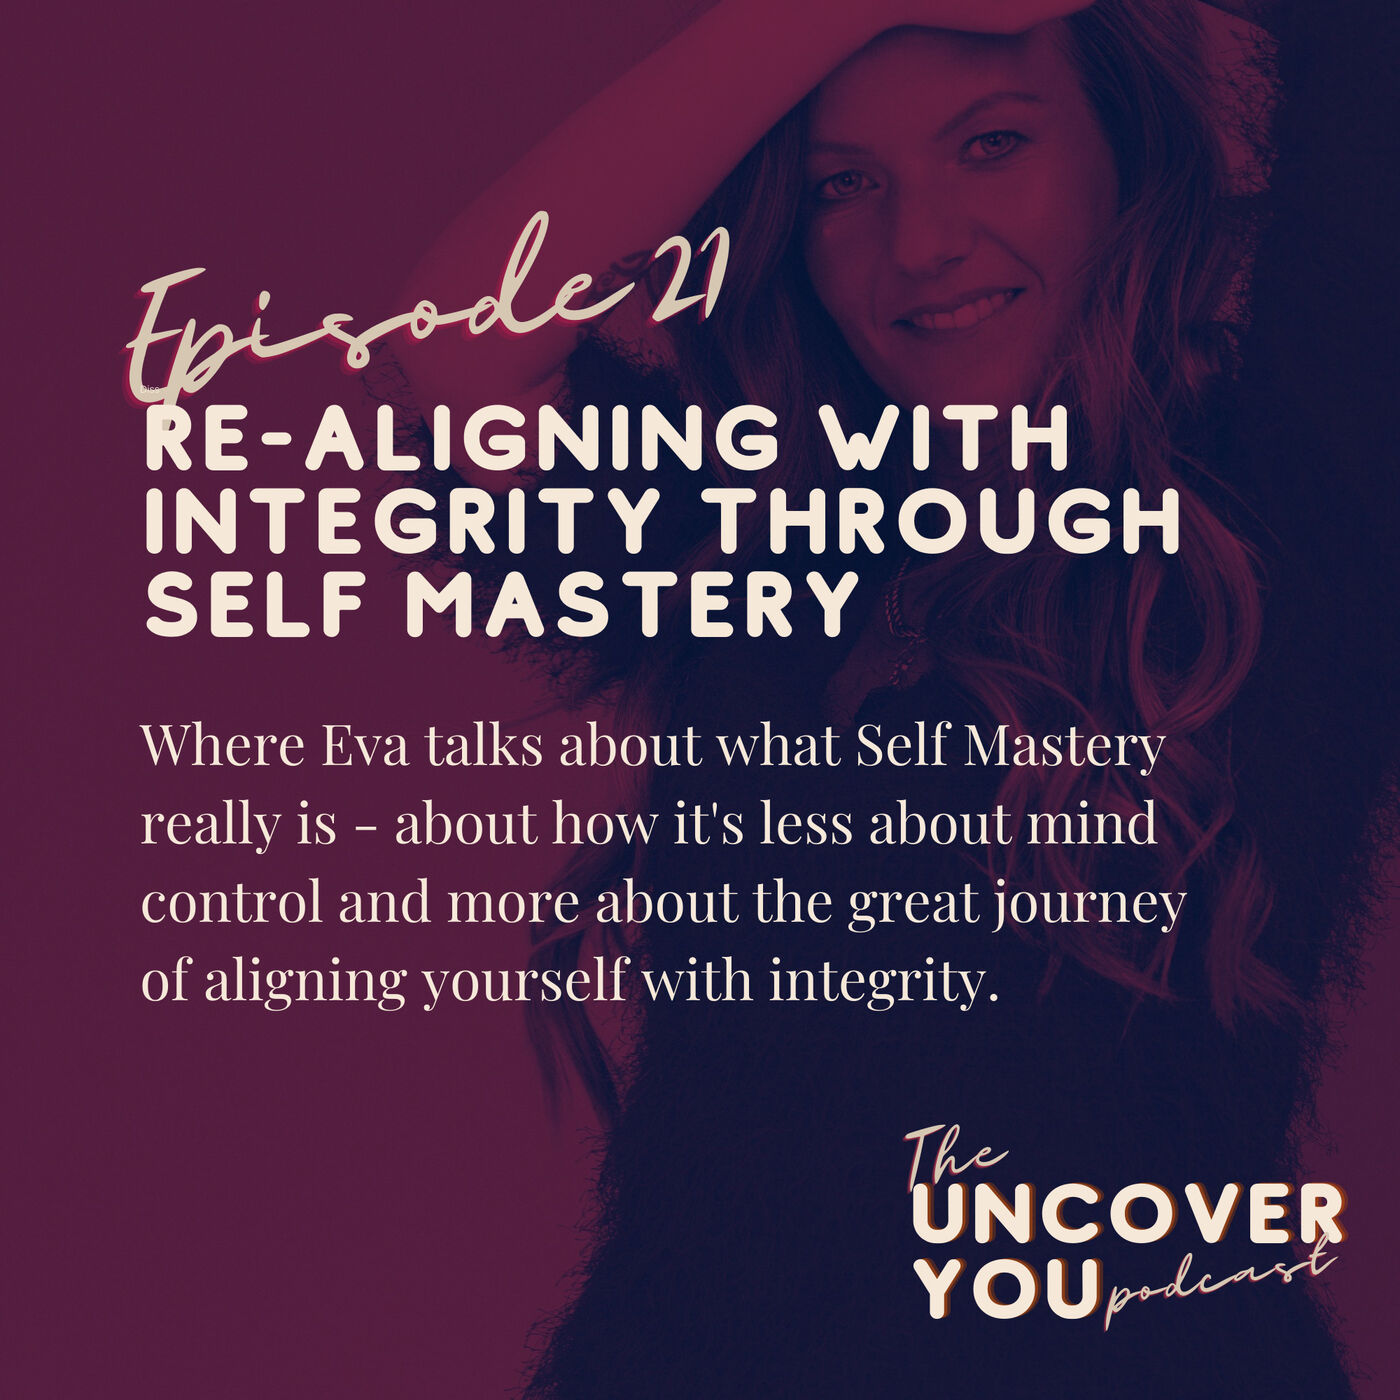 Ep 21: Re-aligning with integrity through Self Mastery